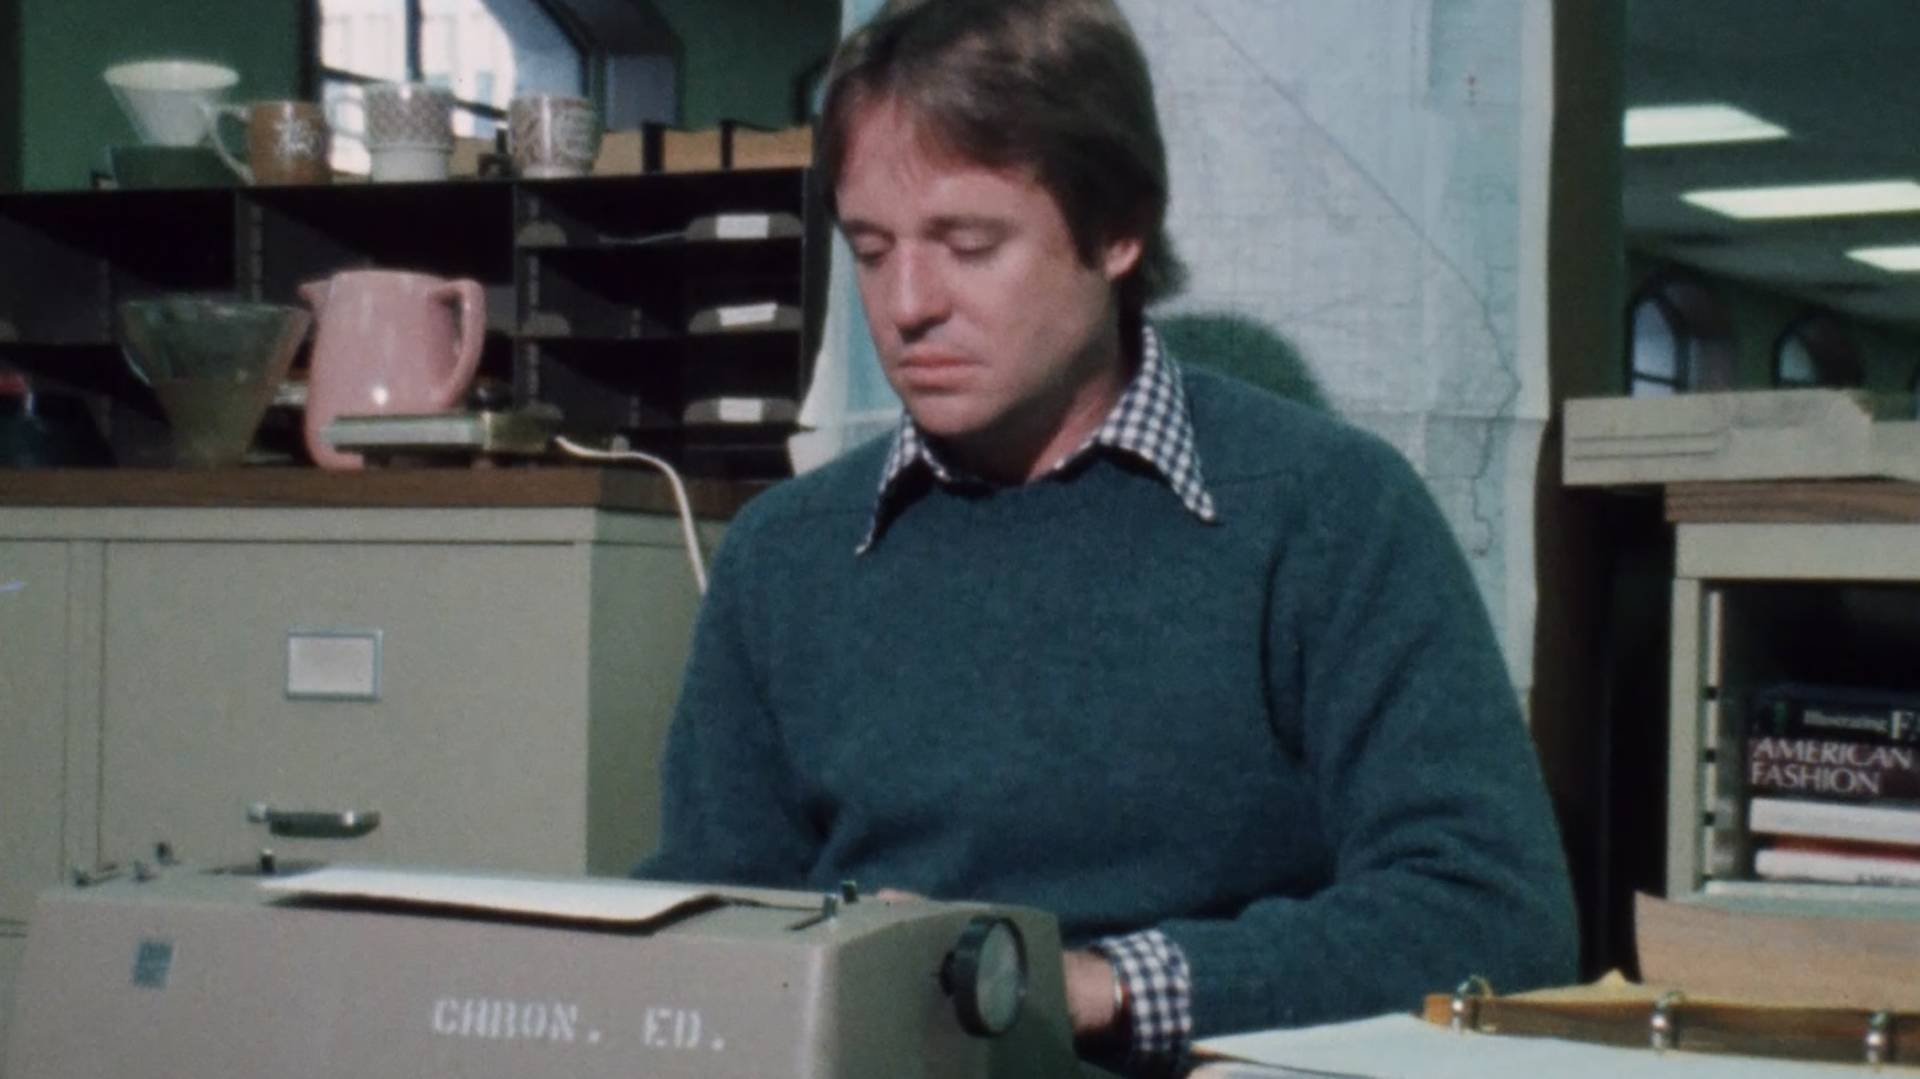 Author, gay icon Armistead Maupin to be profiled in new 'Independent Lens' film